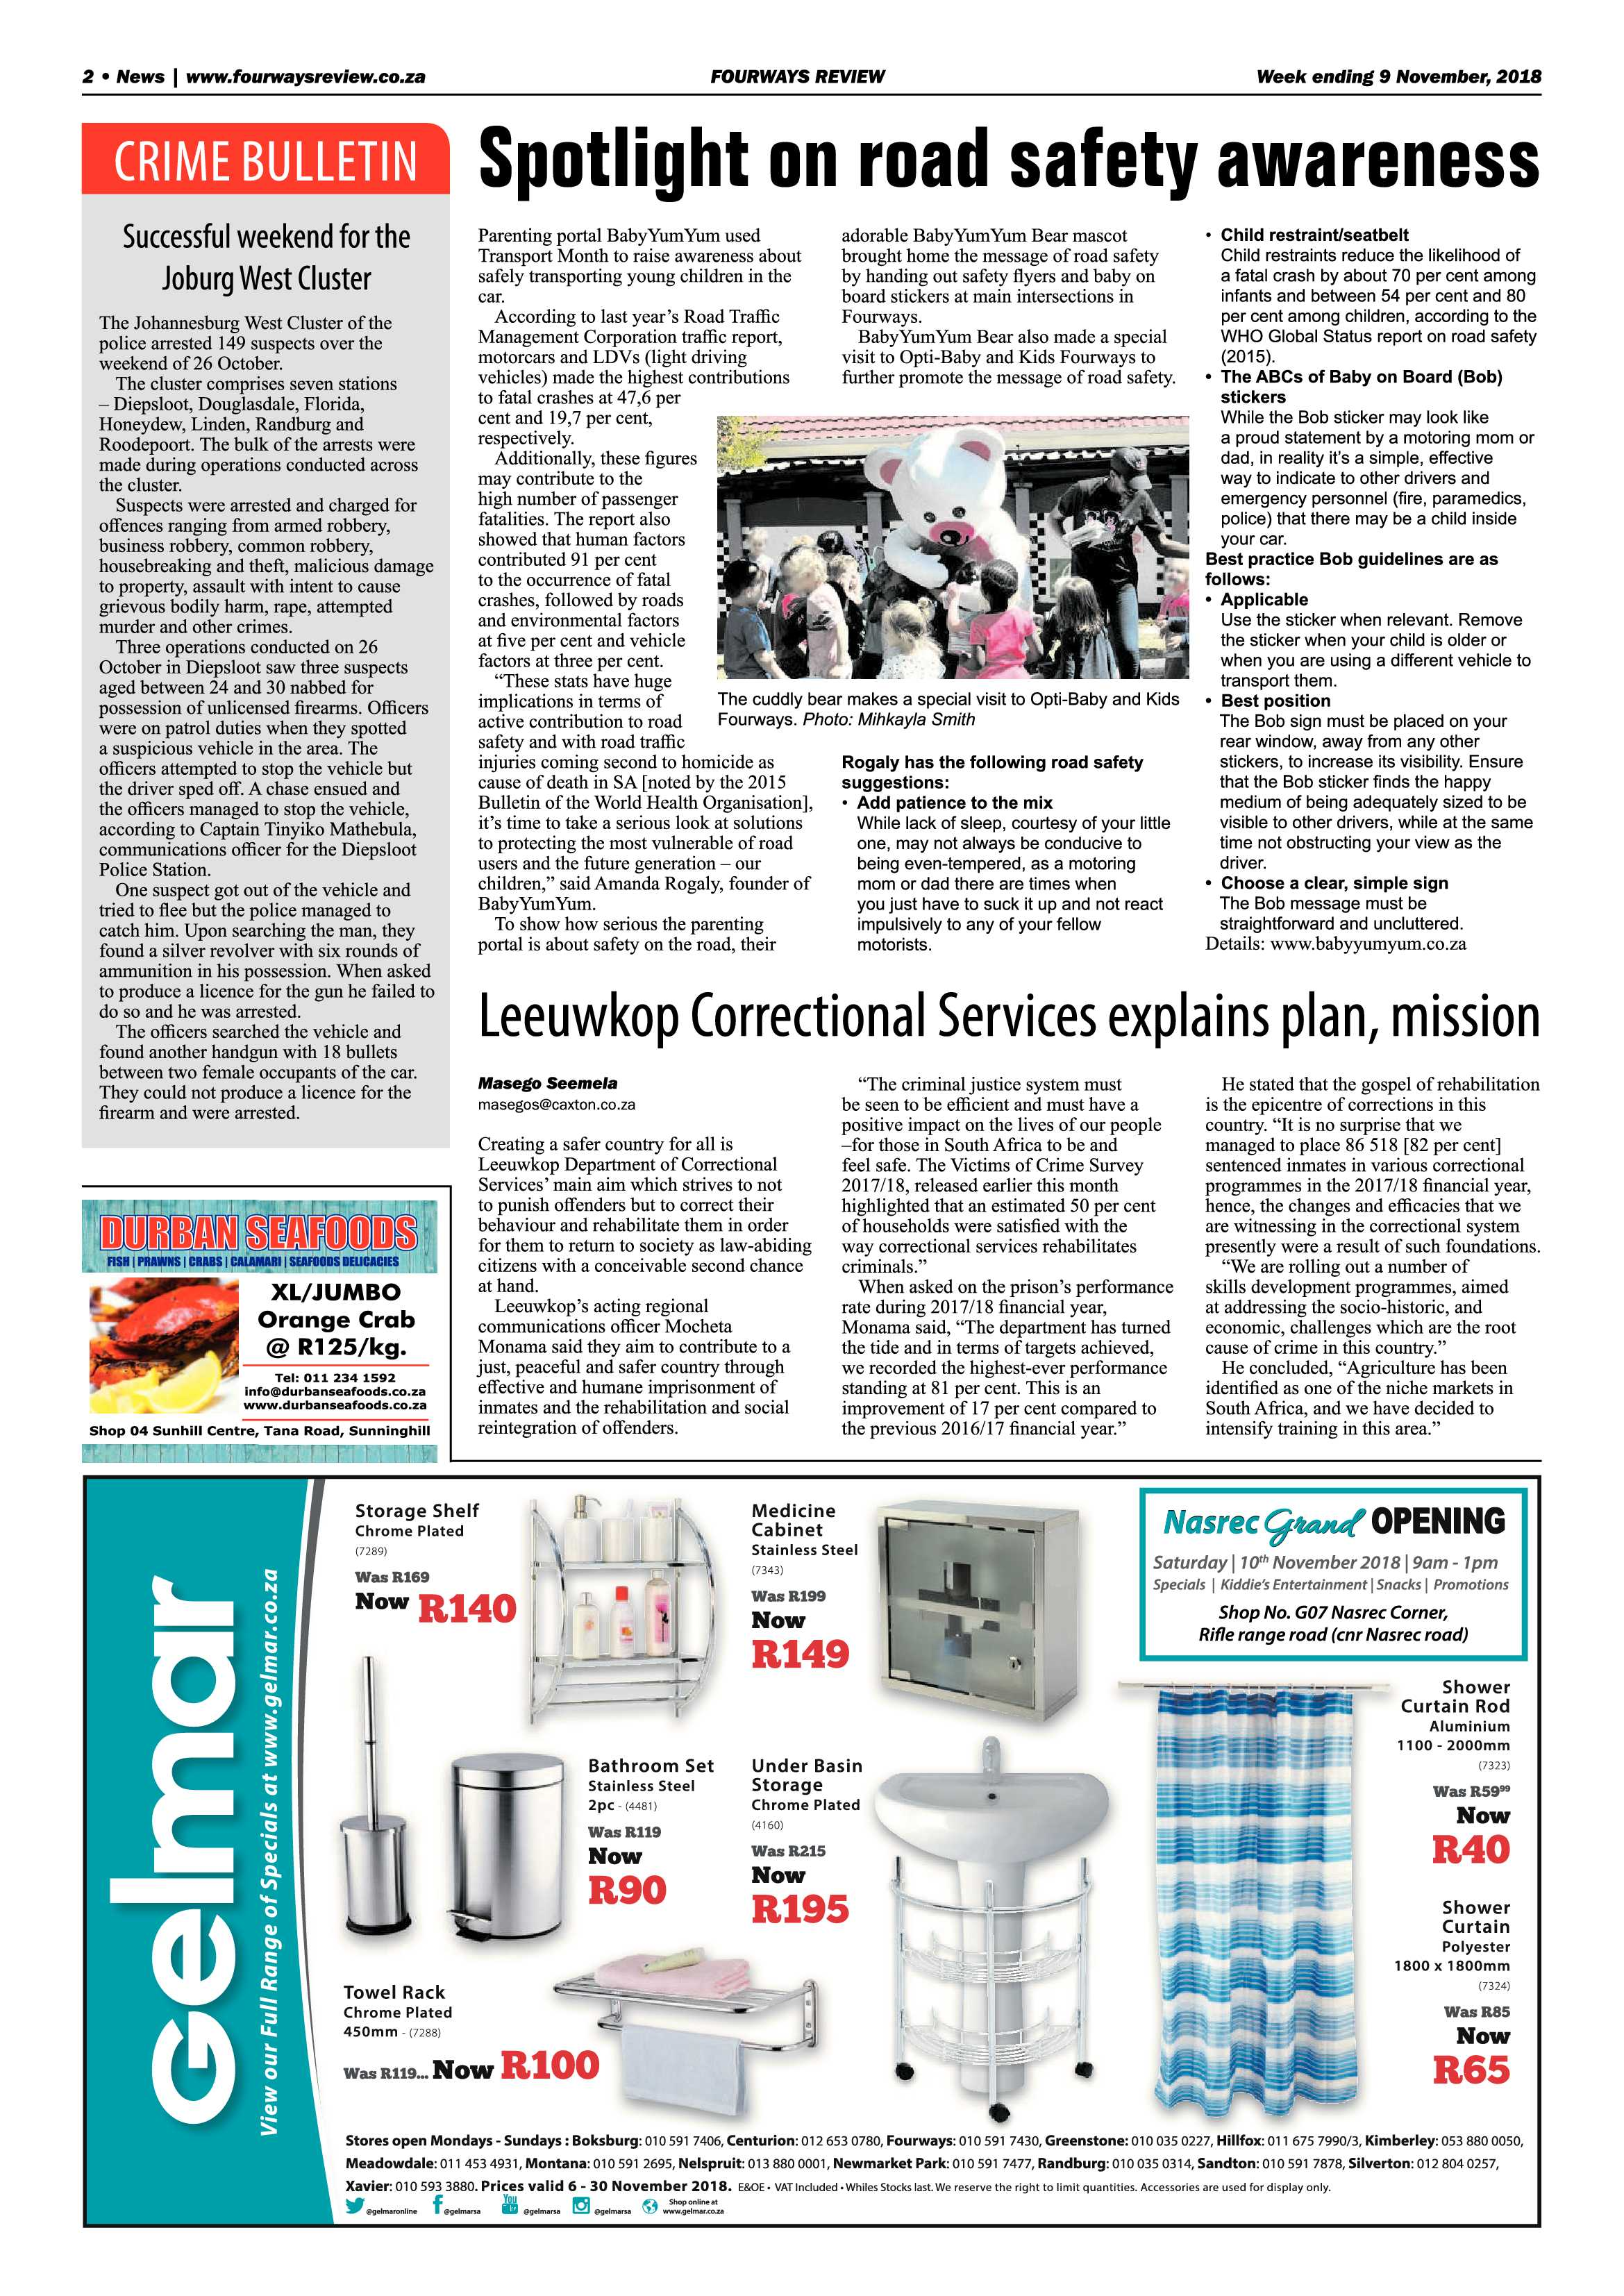 fourways-review-9-november-2018-epapers-page-2